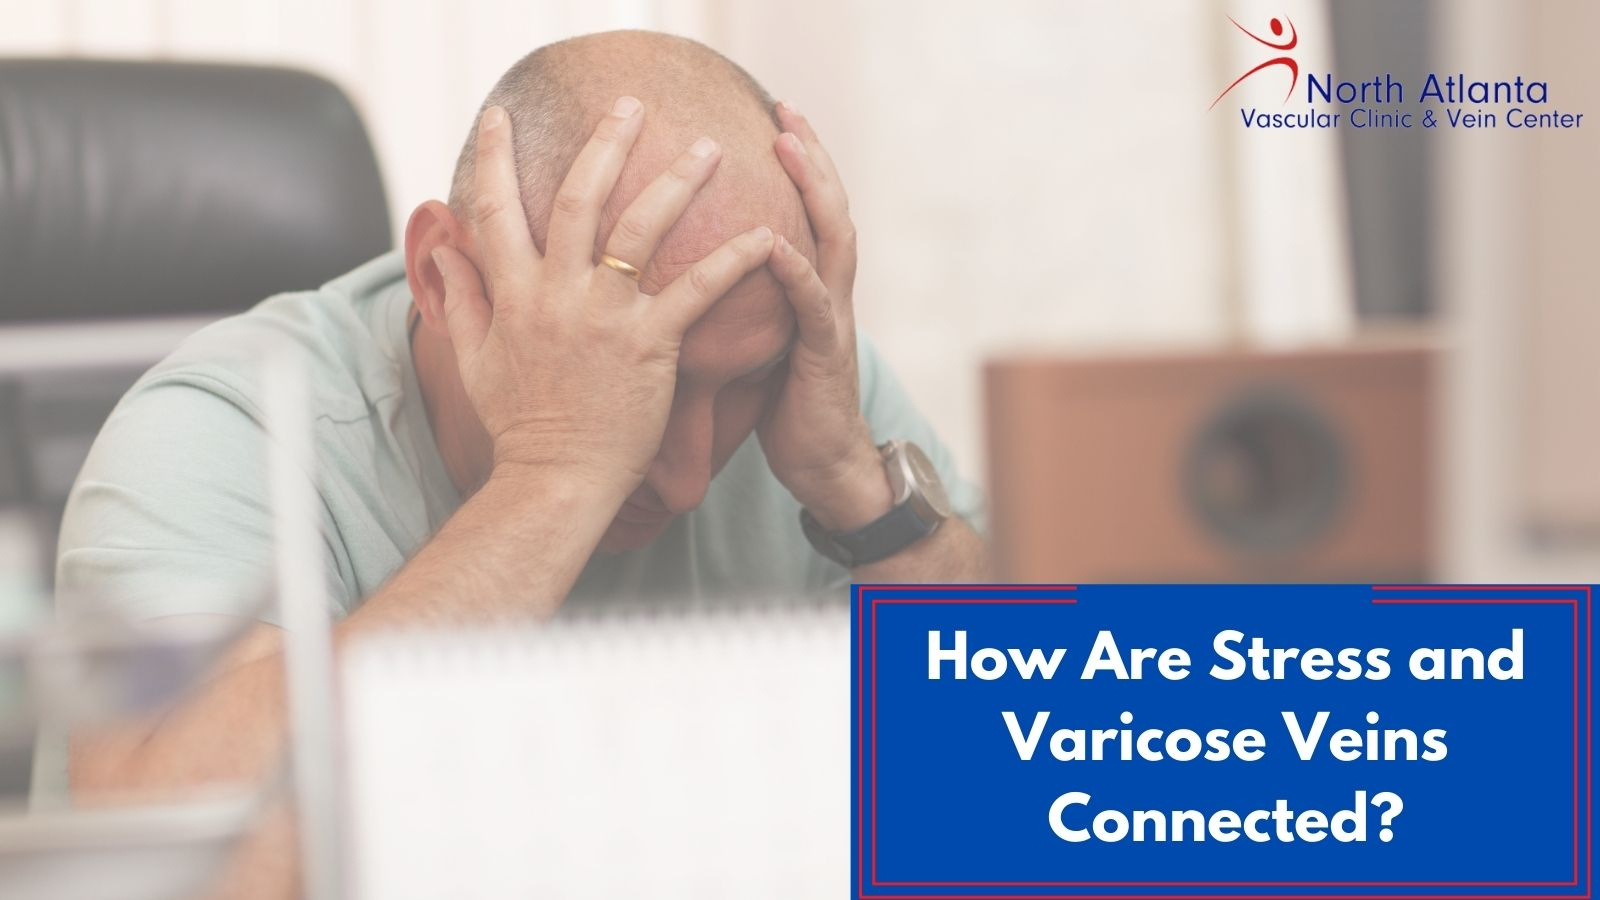 How Are Stress and Varicose Veins Connected?